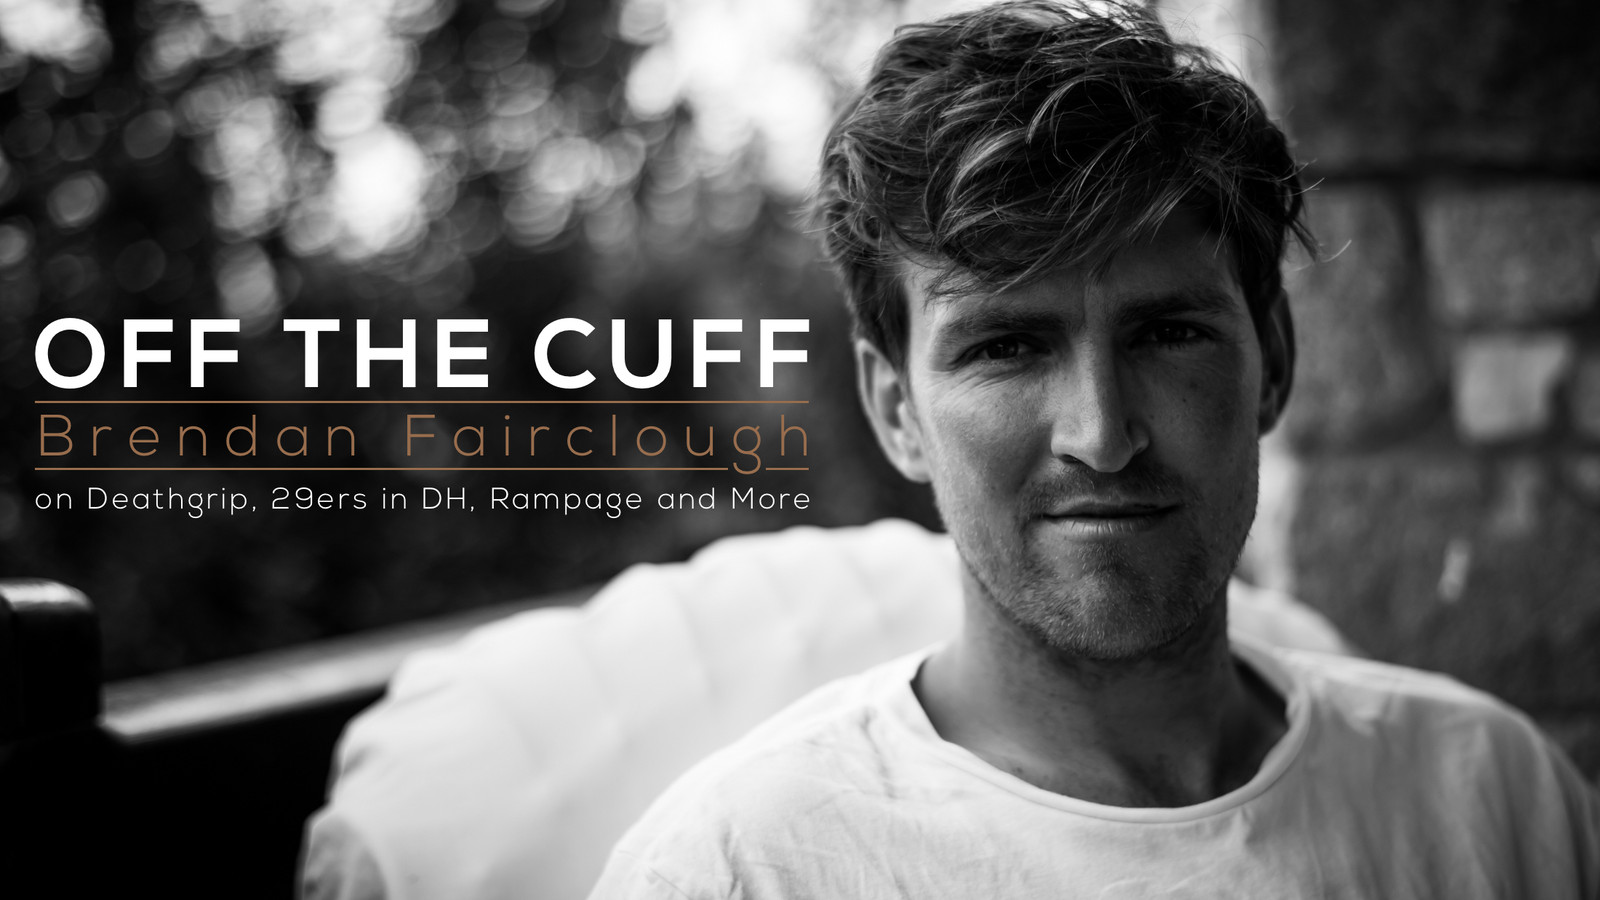 Off The Cuff: Brendan Fairclough on Deathgrip, 29ers in DH, Rampage and More